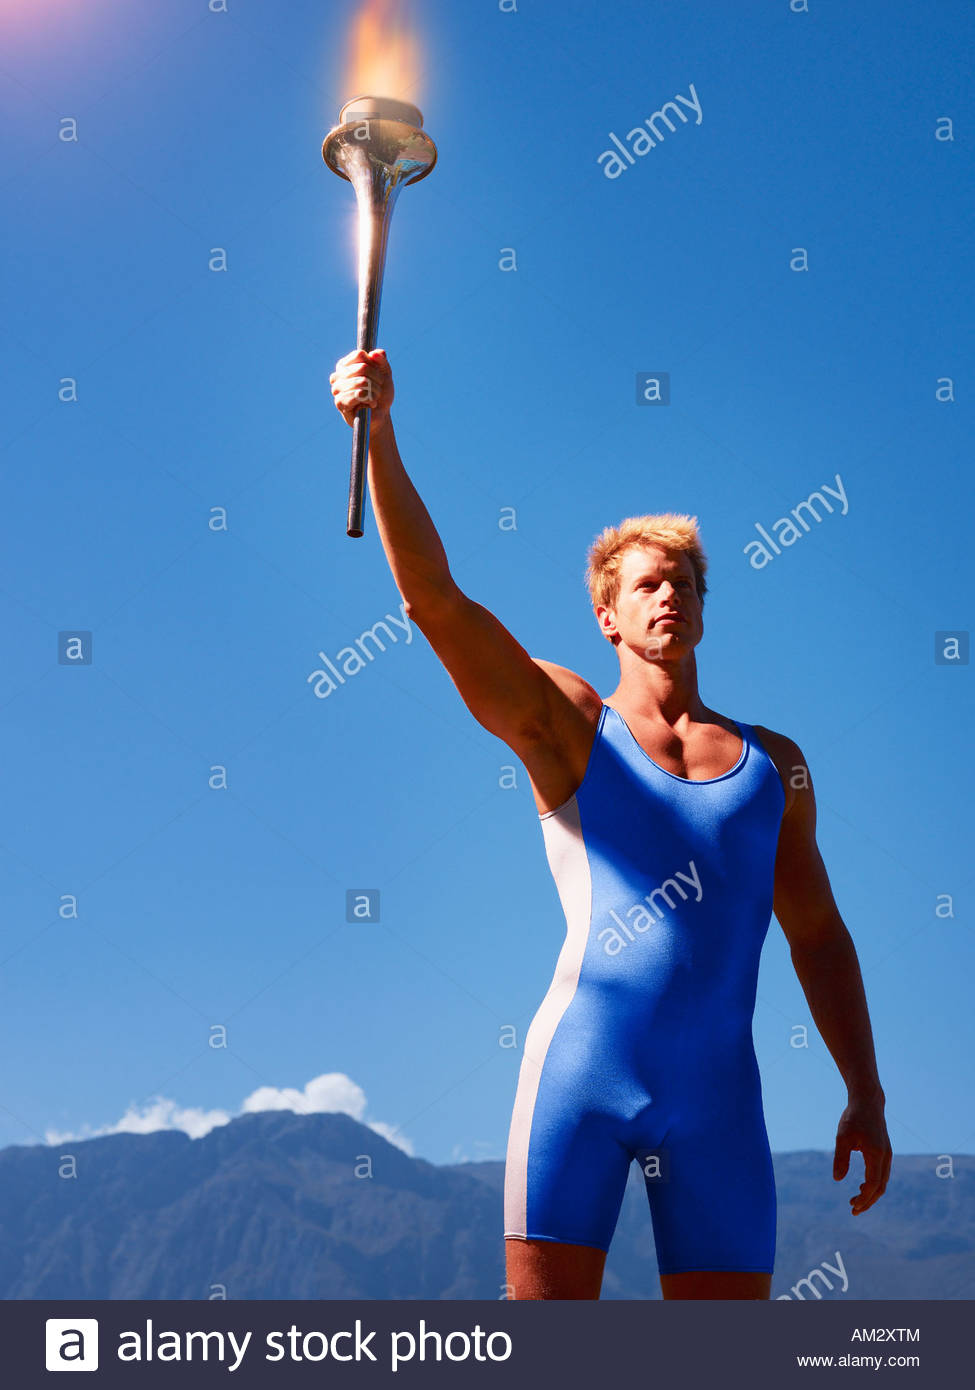 Athlete holding torch in scenic location - Stock Image